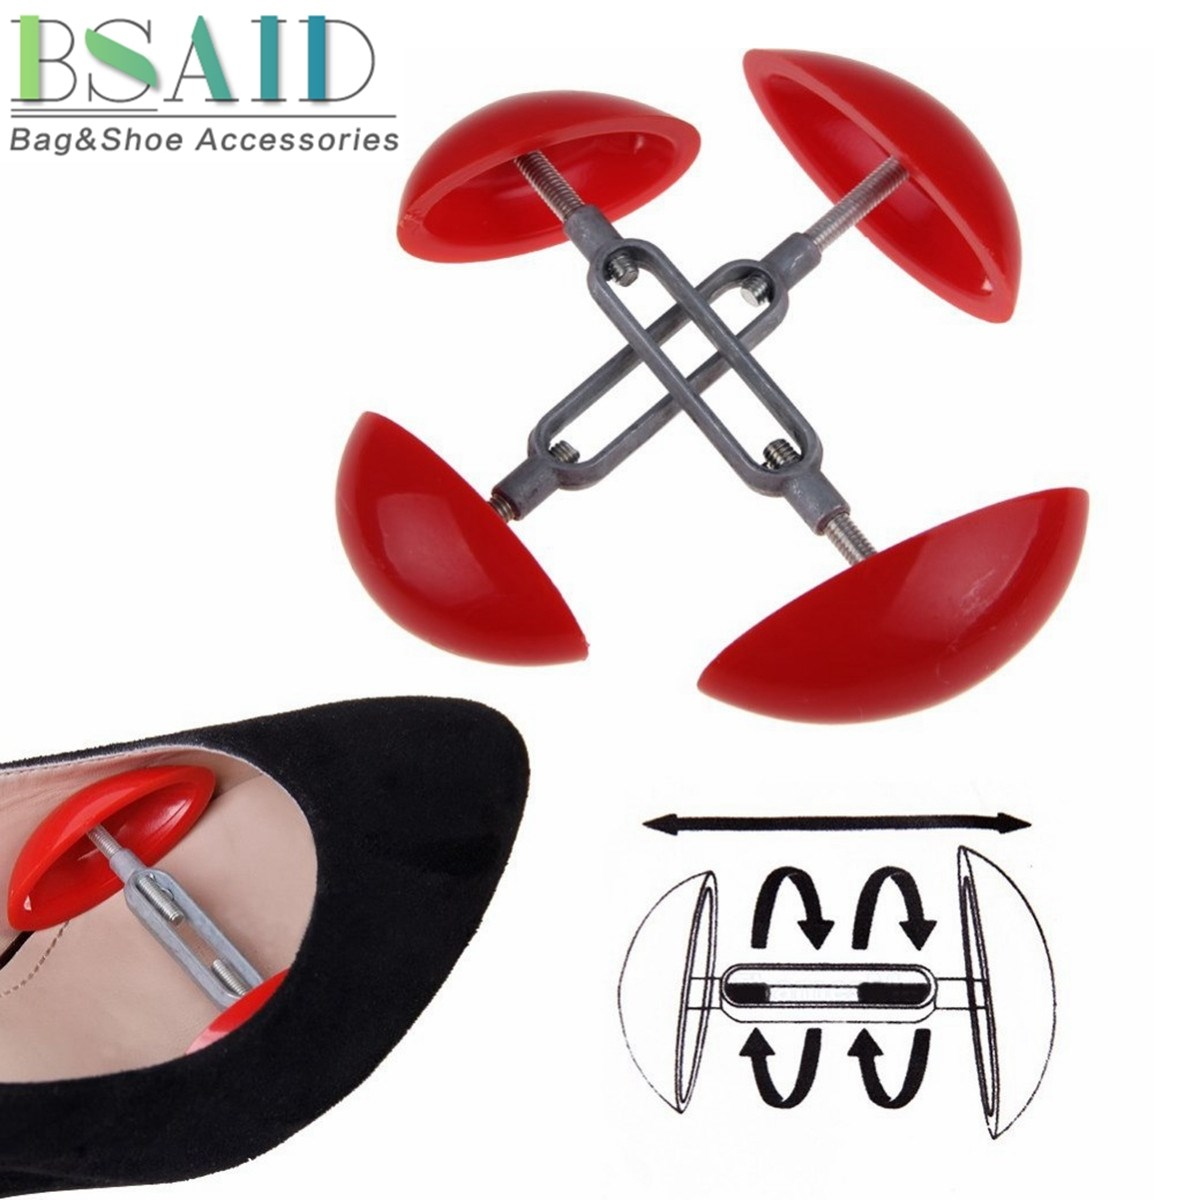 BSAID 1 Pair Shoe Stretcher Shoes Tree Shaper Rack, Mini Mens Ladies Professional Shoe Trees Adjustable Shaper Width Expander